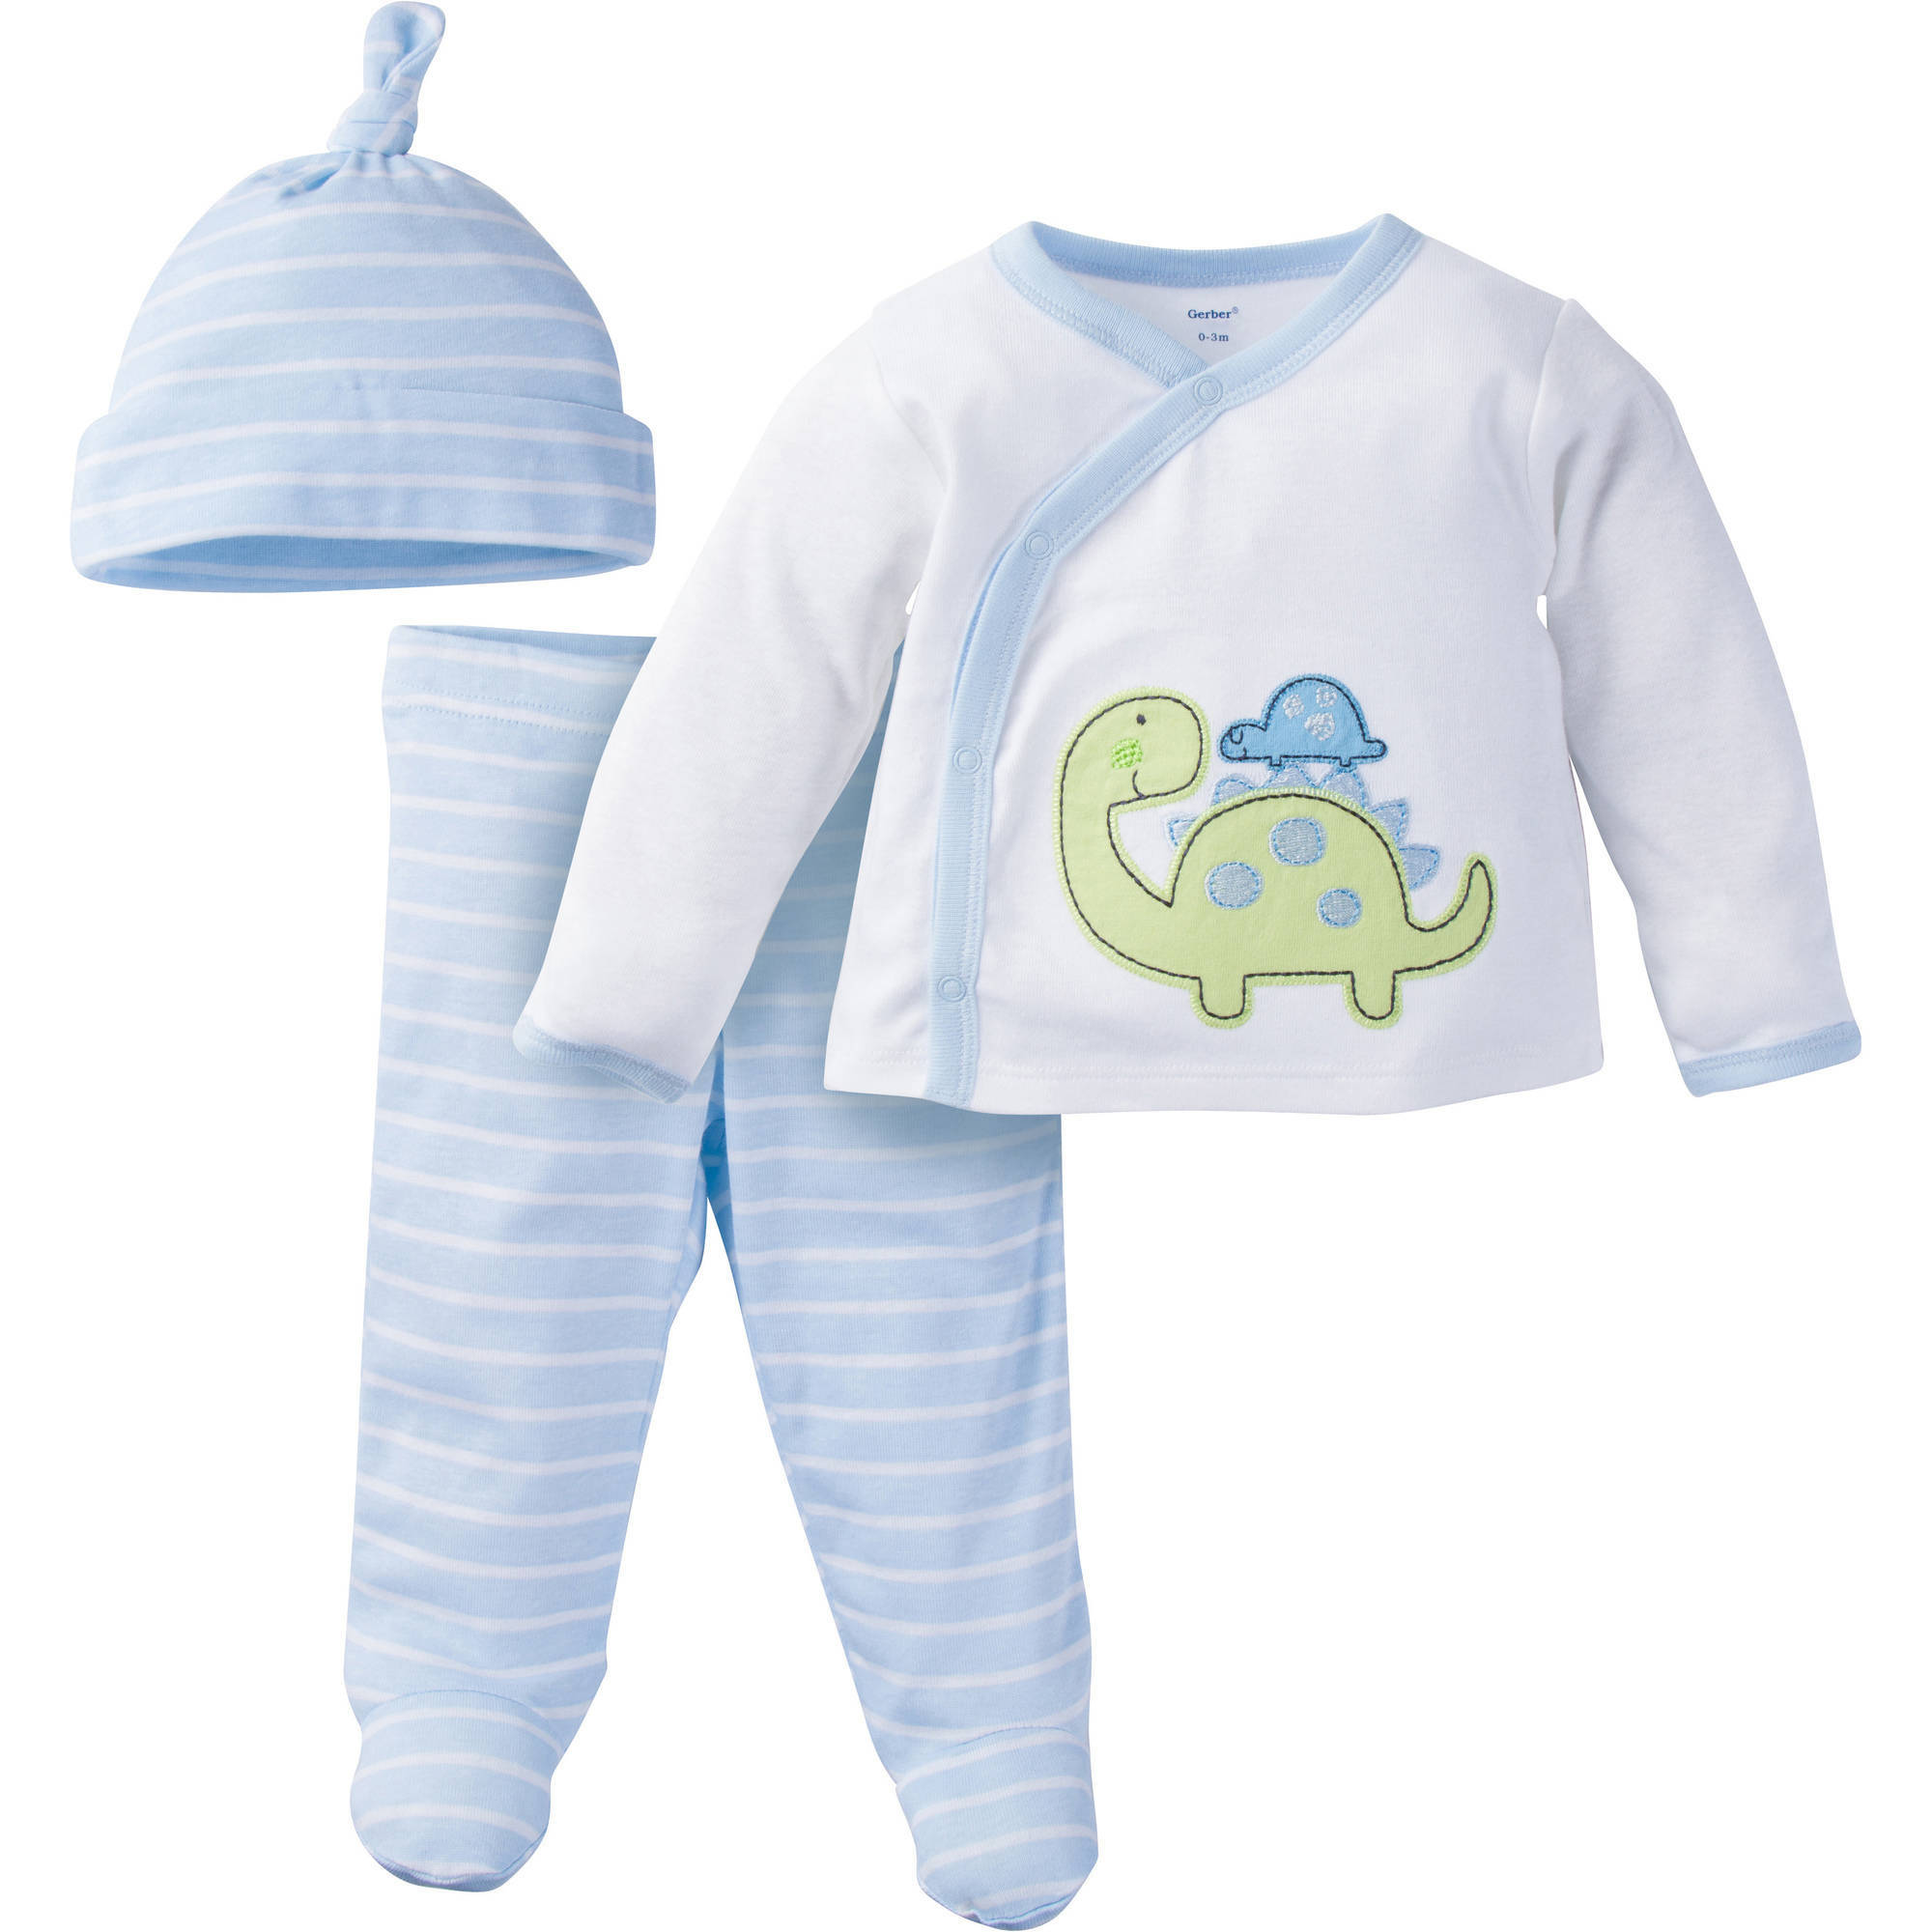 Gerber Newborn Baby Boy Take-Me-Home Outfit Set, 3-Piece